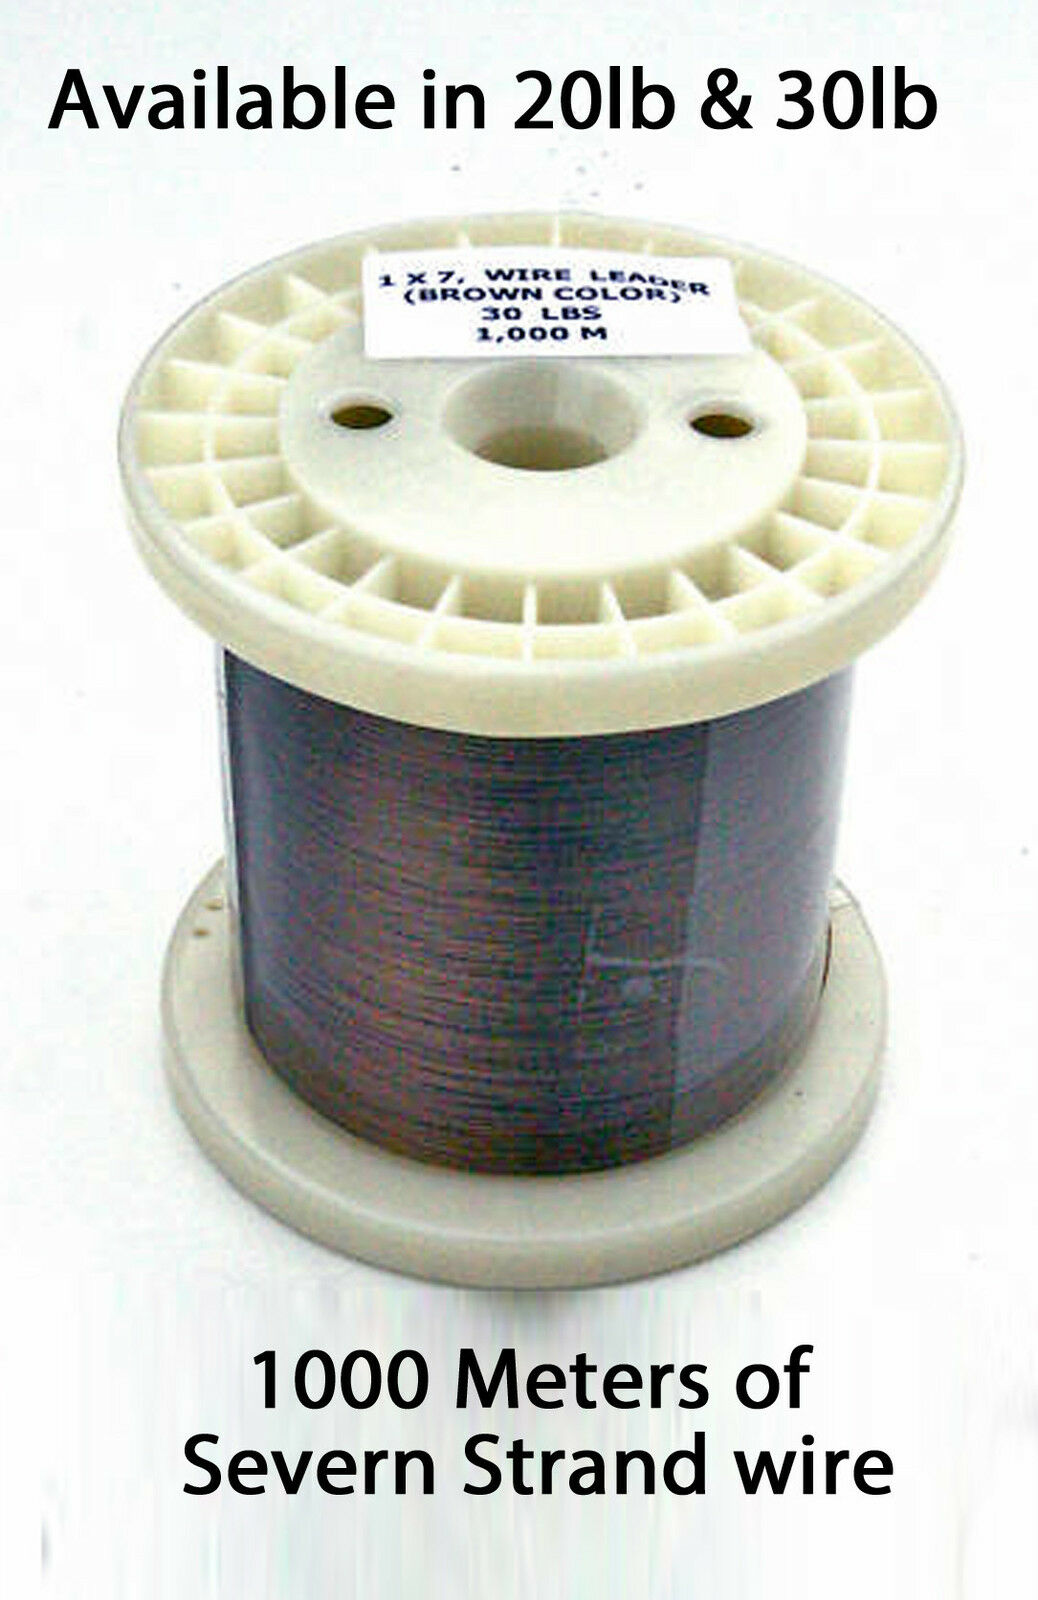 Seven Strand Pike & Trace Wire 1000mtr Spools Available in 20lb & 30lb